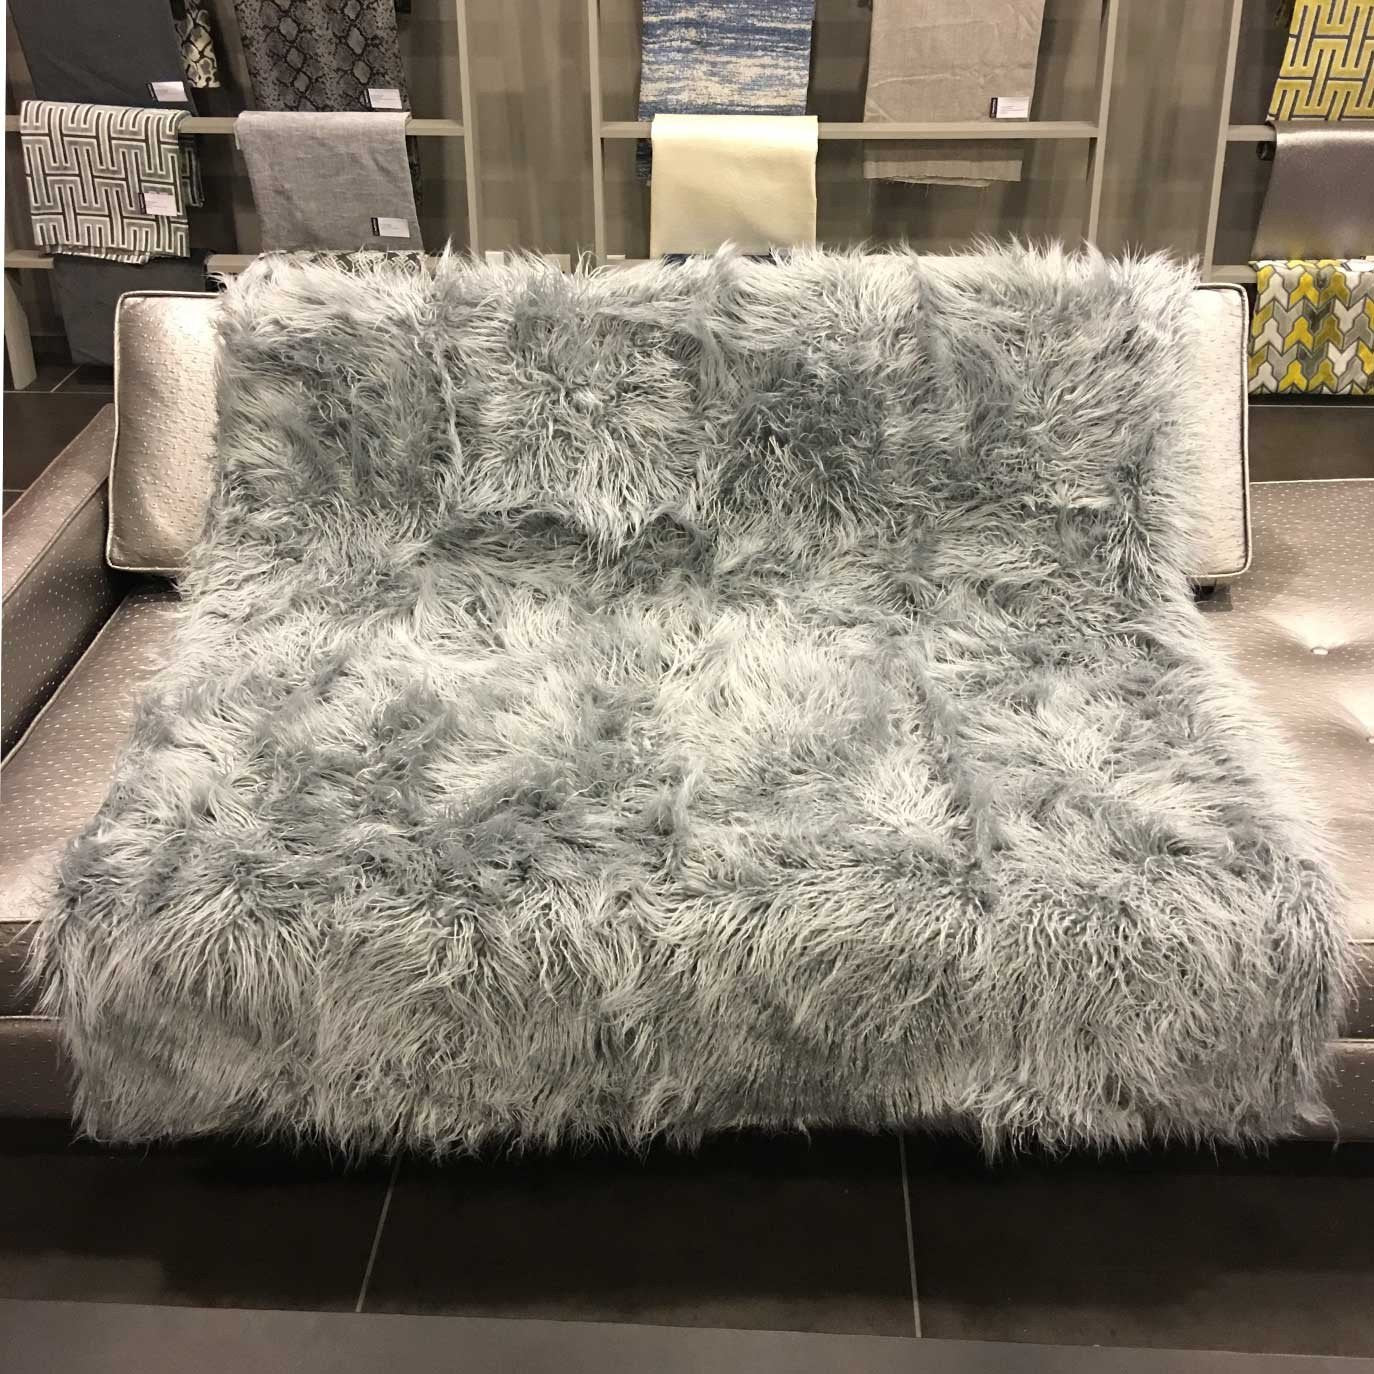 Gigi   Luxurious Shaggy Faux Fur Throw Blanket   Available In 12 Colors    Feather ...